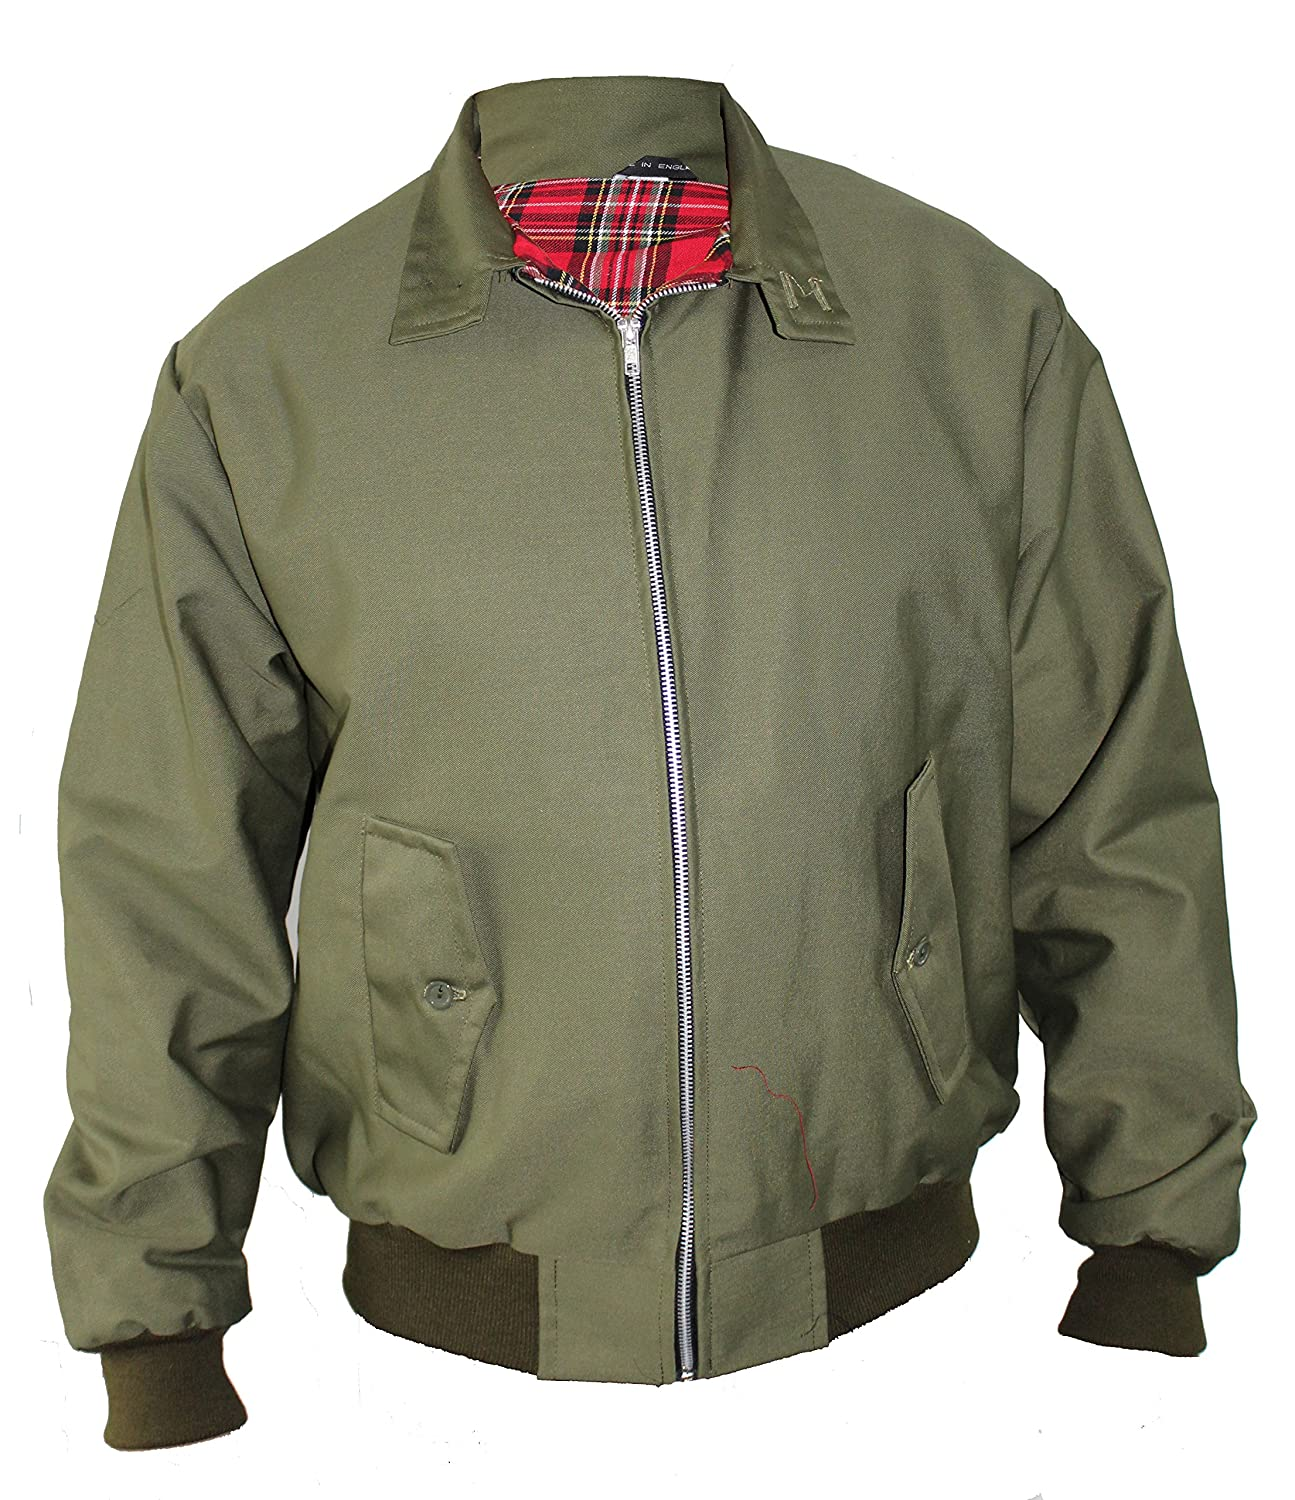 Harrington Jacket Classic/Retro/Mod/Scooter by SKYTEXUK, 10 colours, sizes XS - 8XL